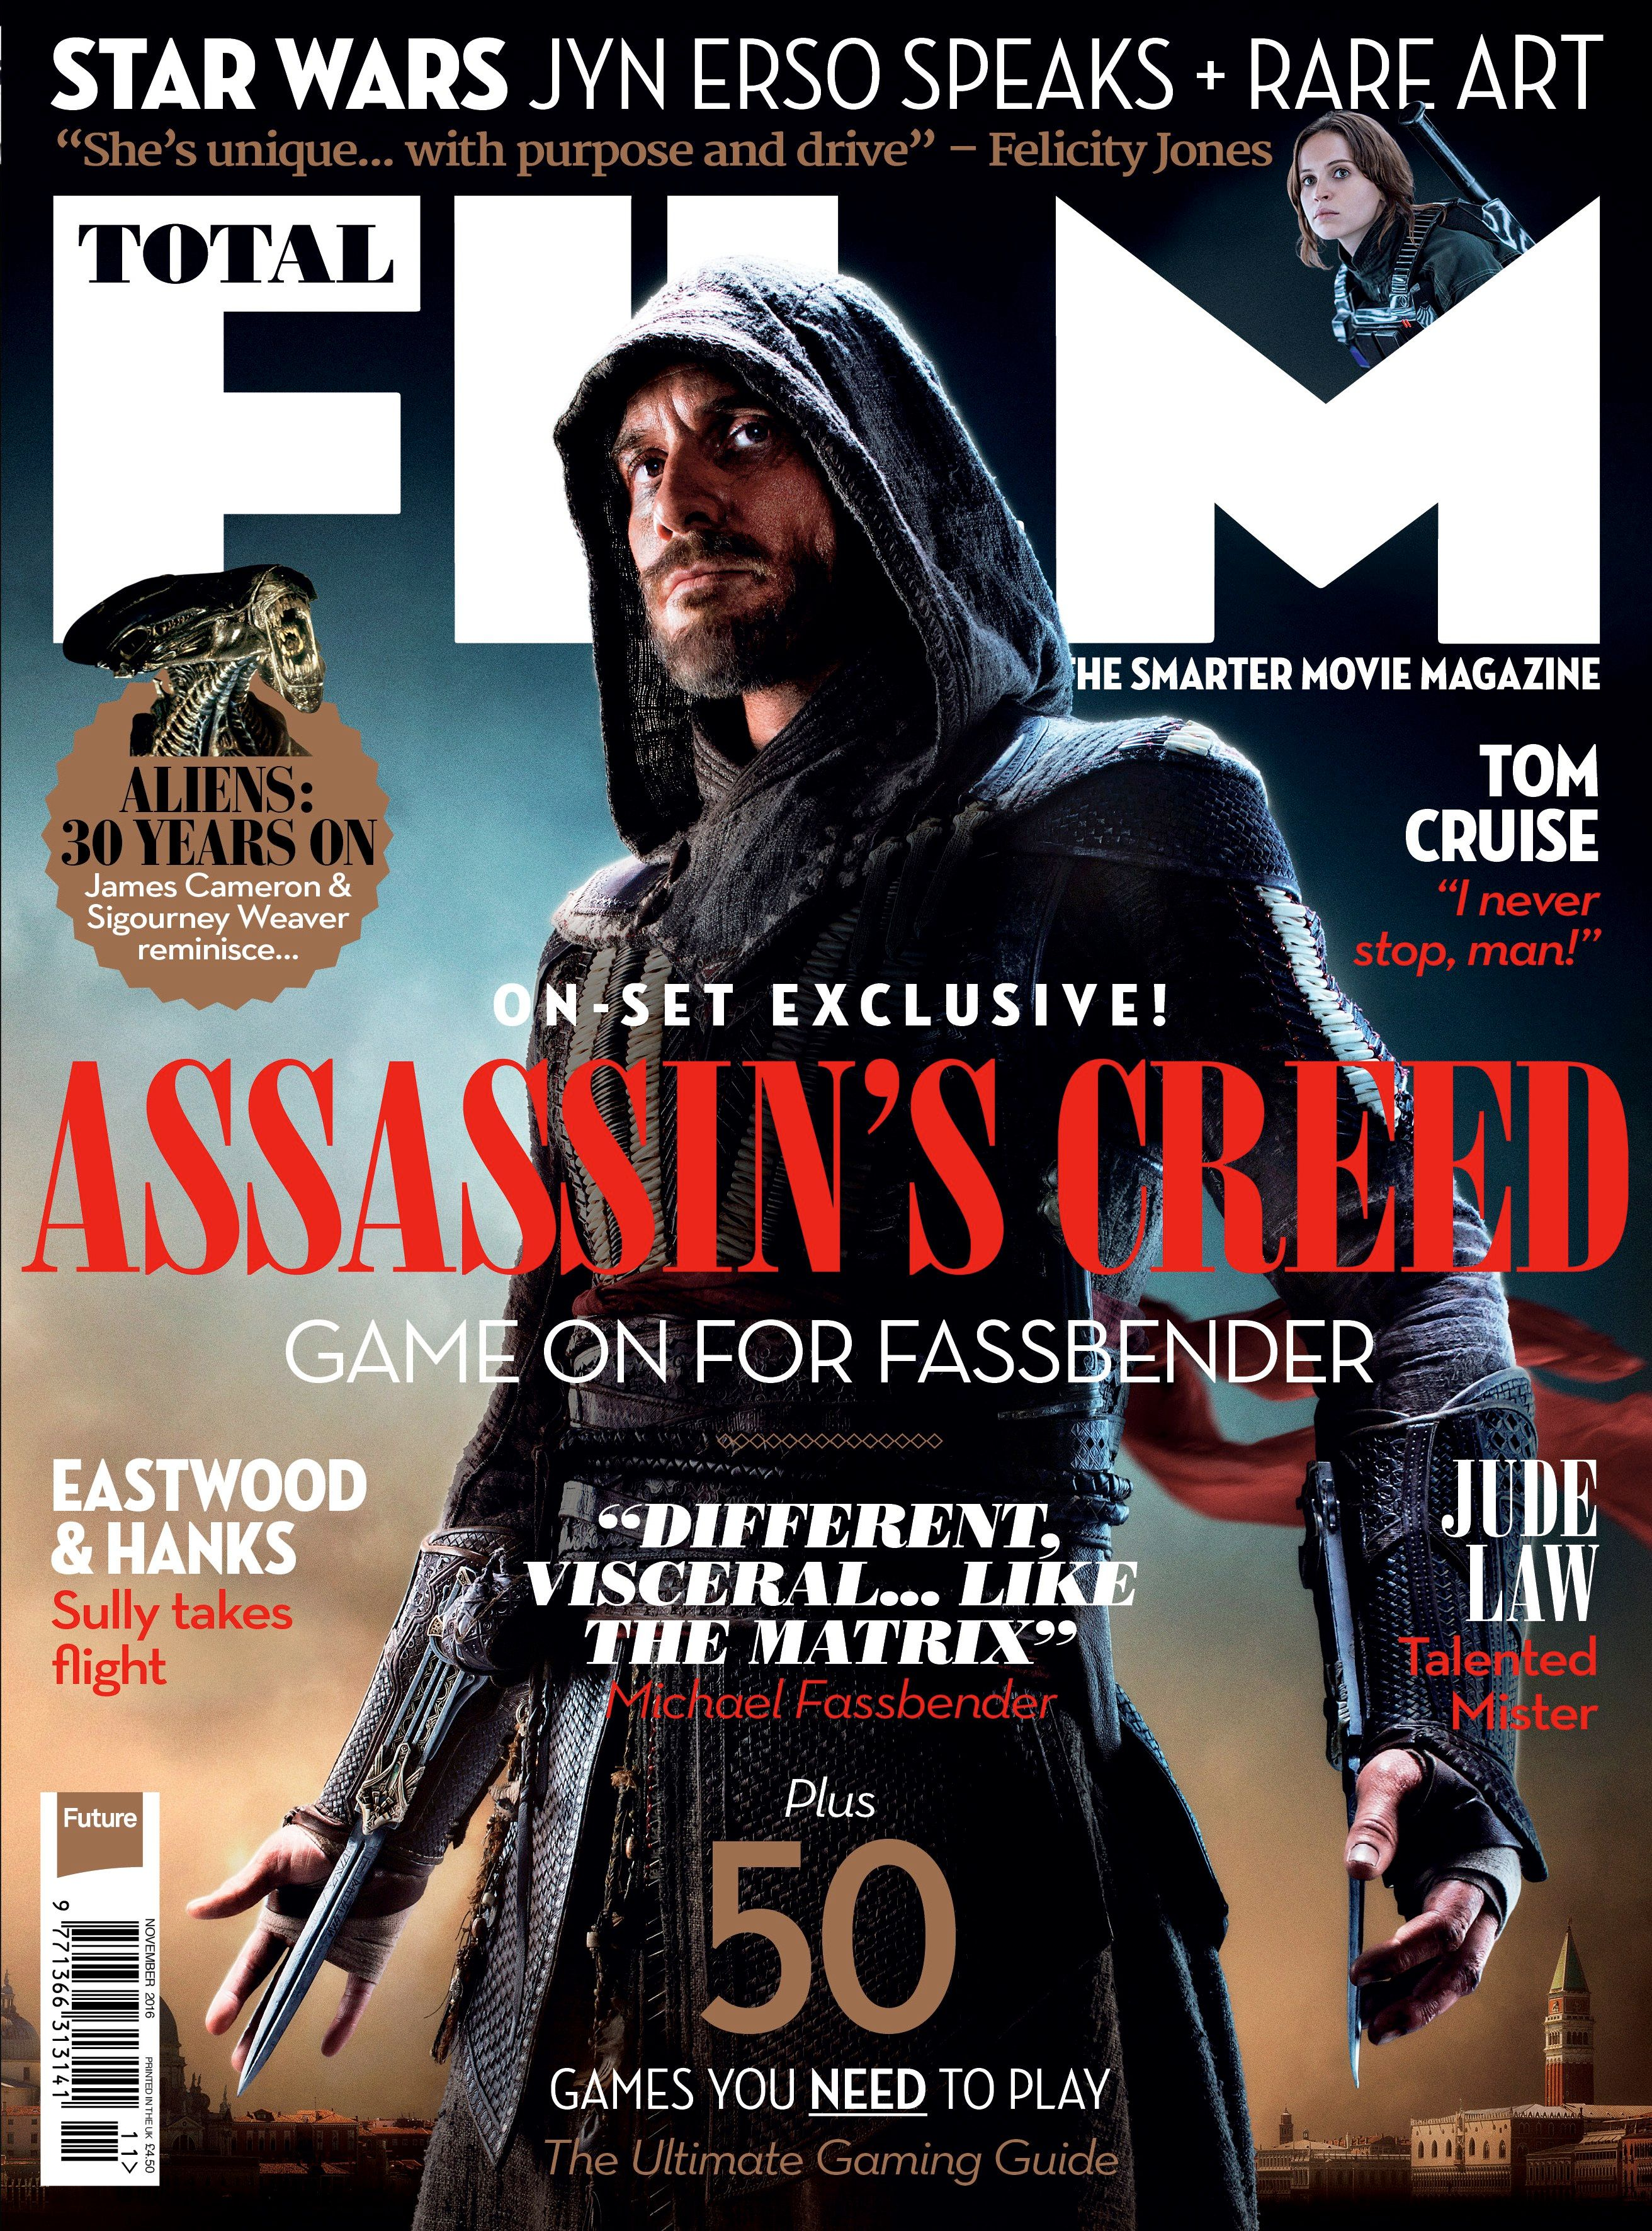 AssassinS Creed Film Review